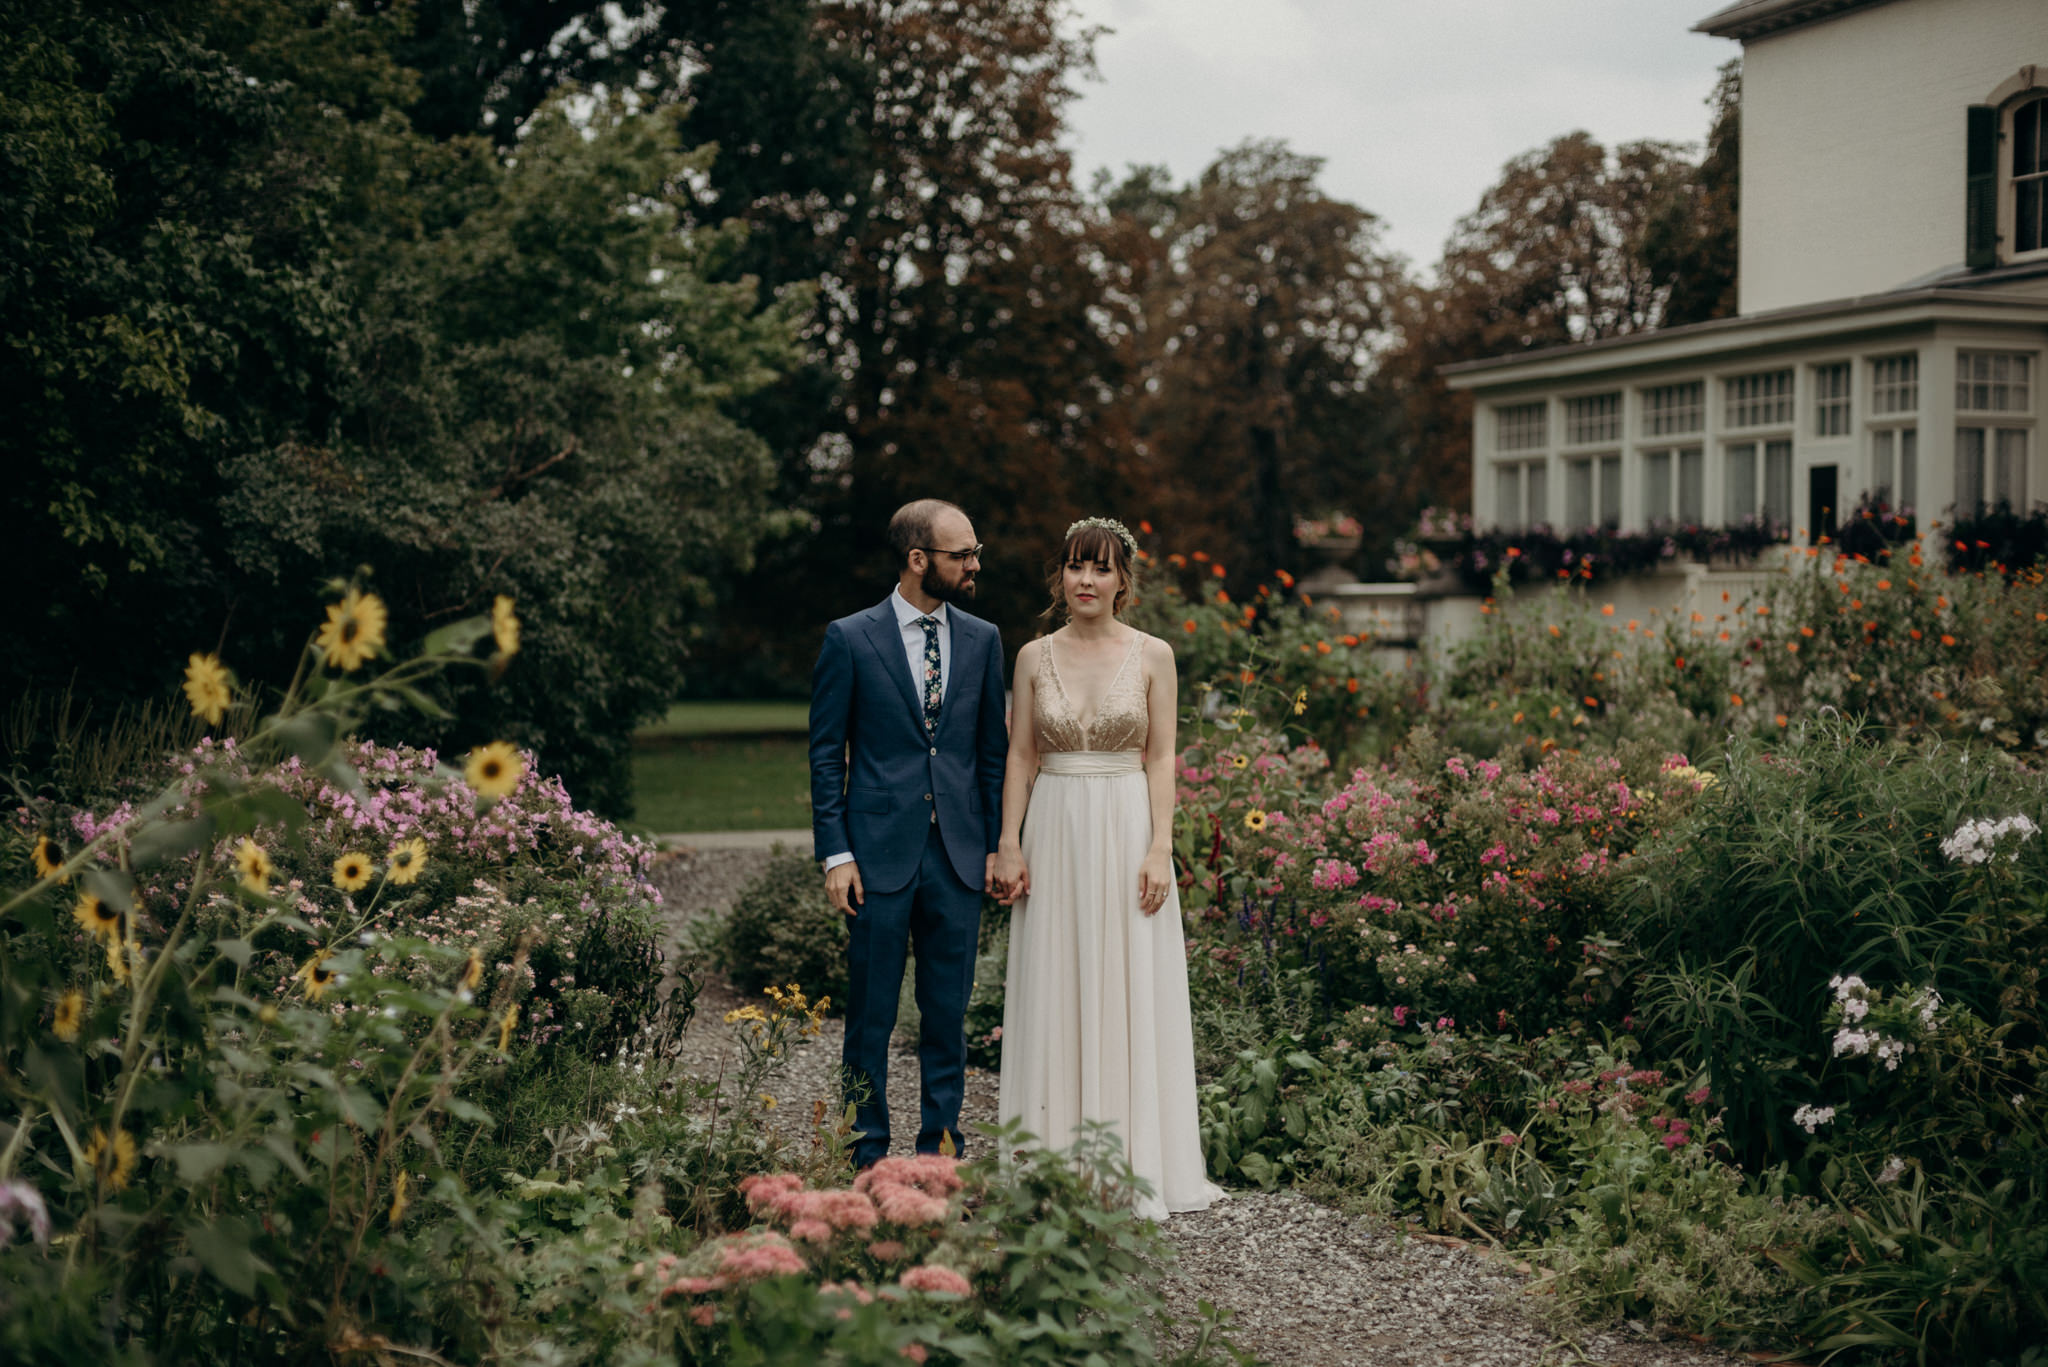 Spadina Museum wedding portraits in the garden